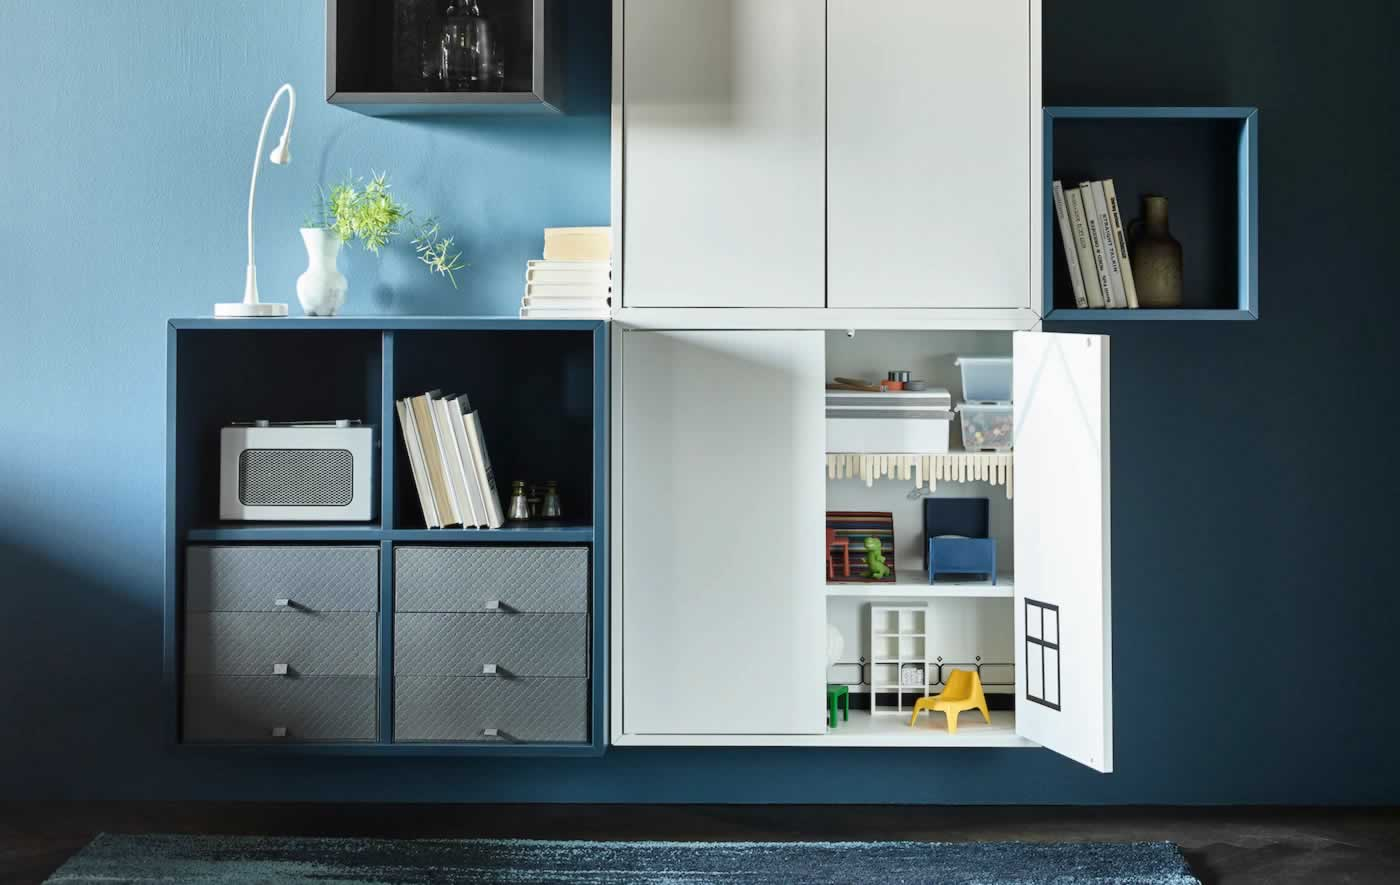 IKEA Ideas - 5 child-friendly spaces